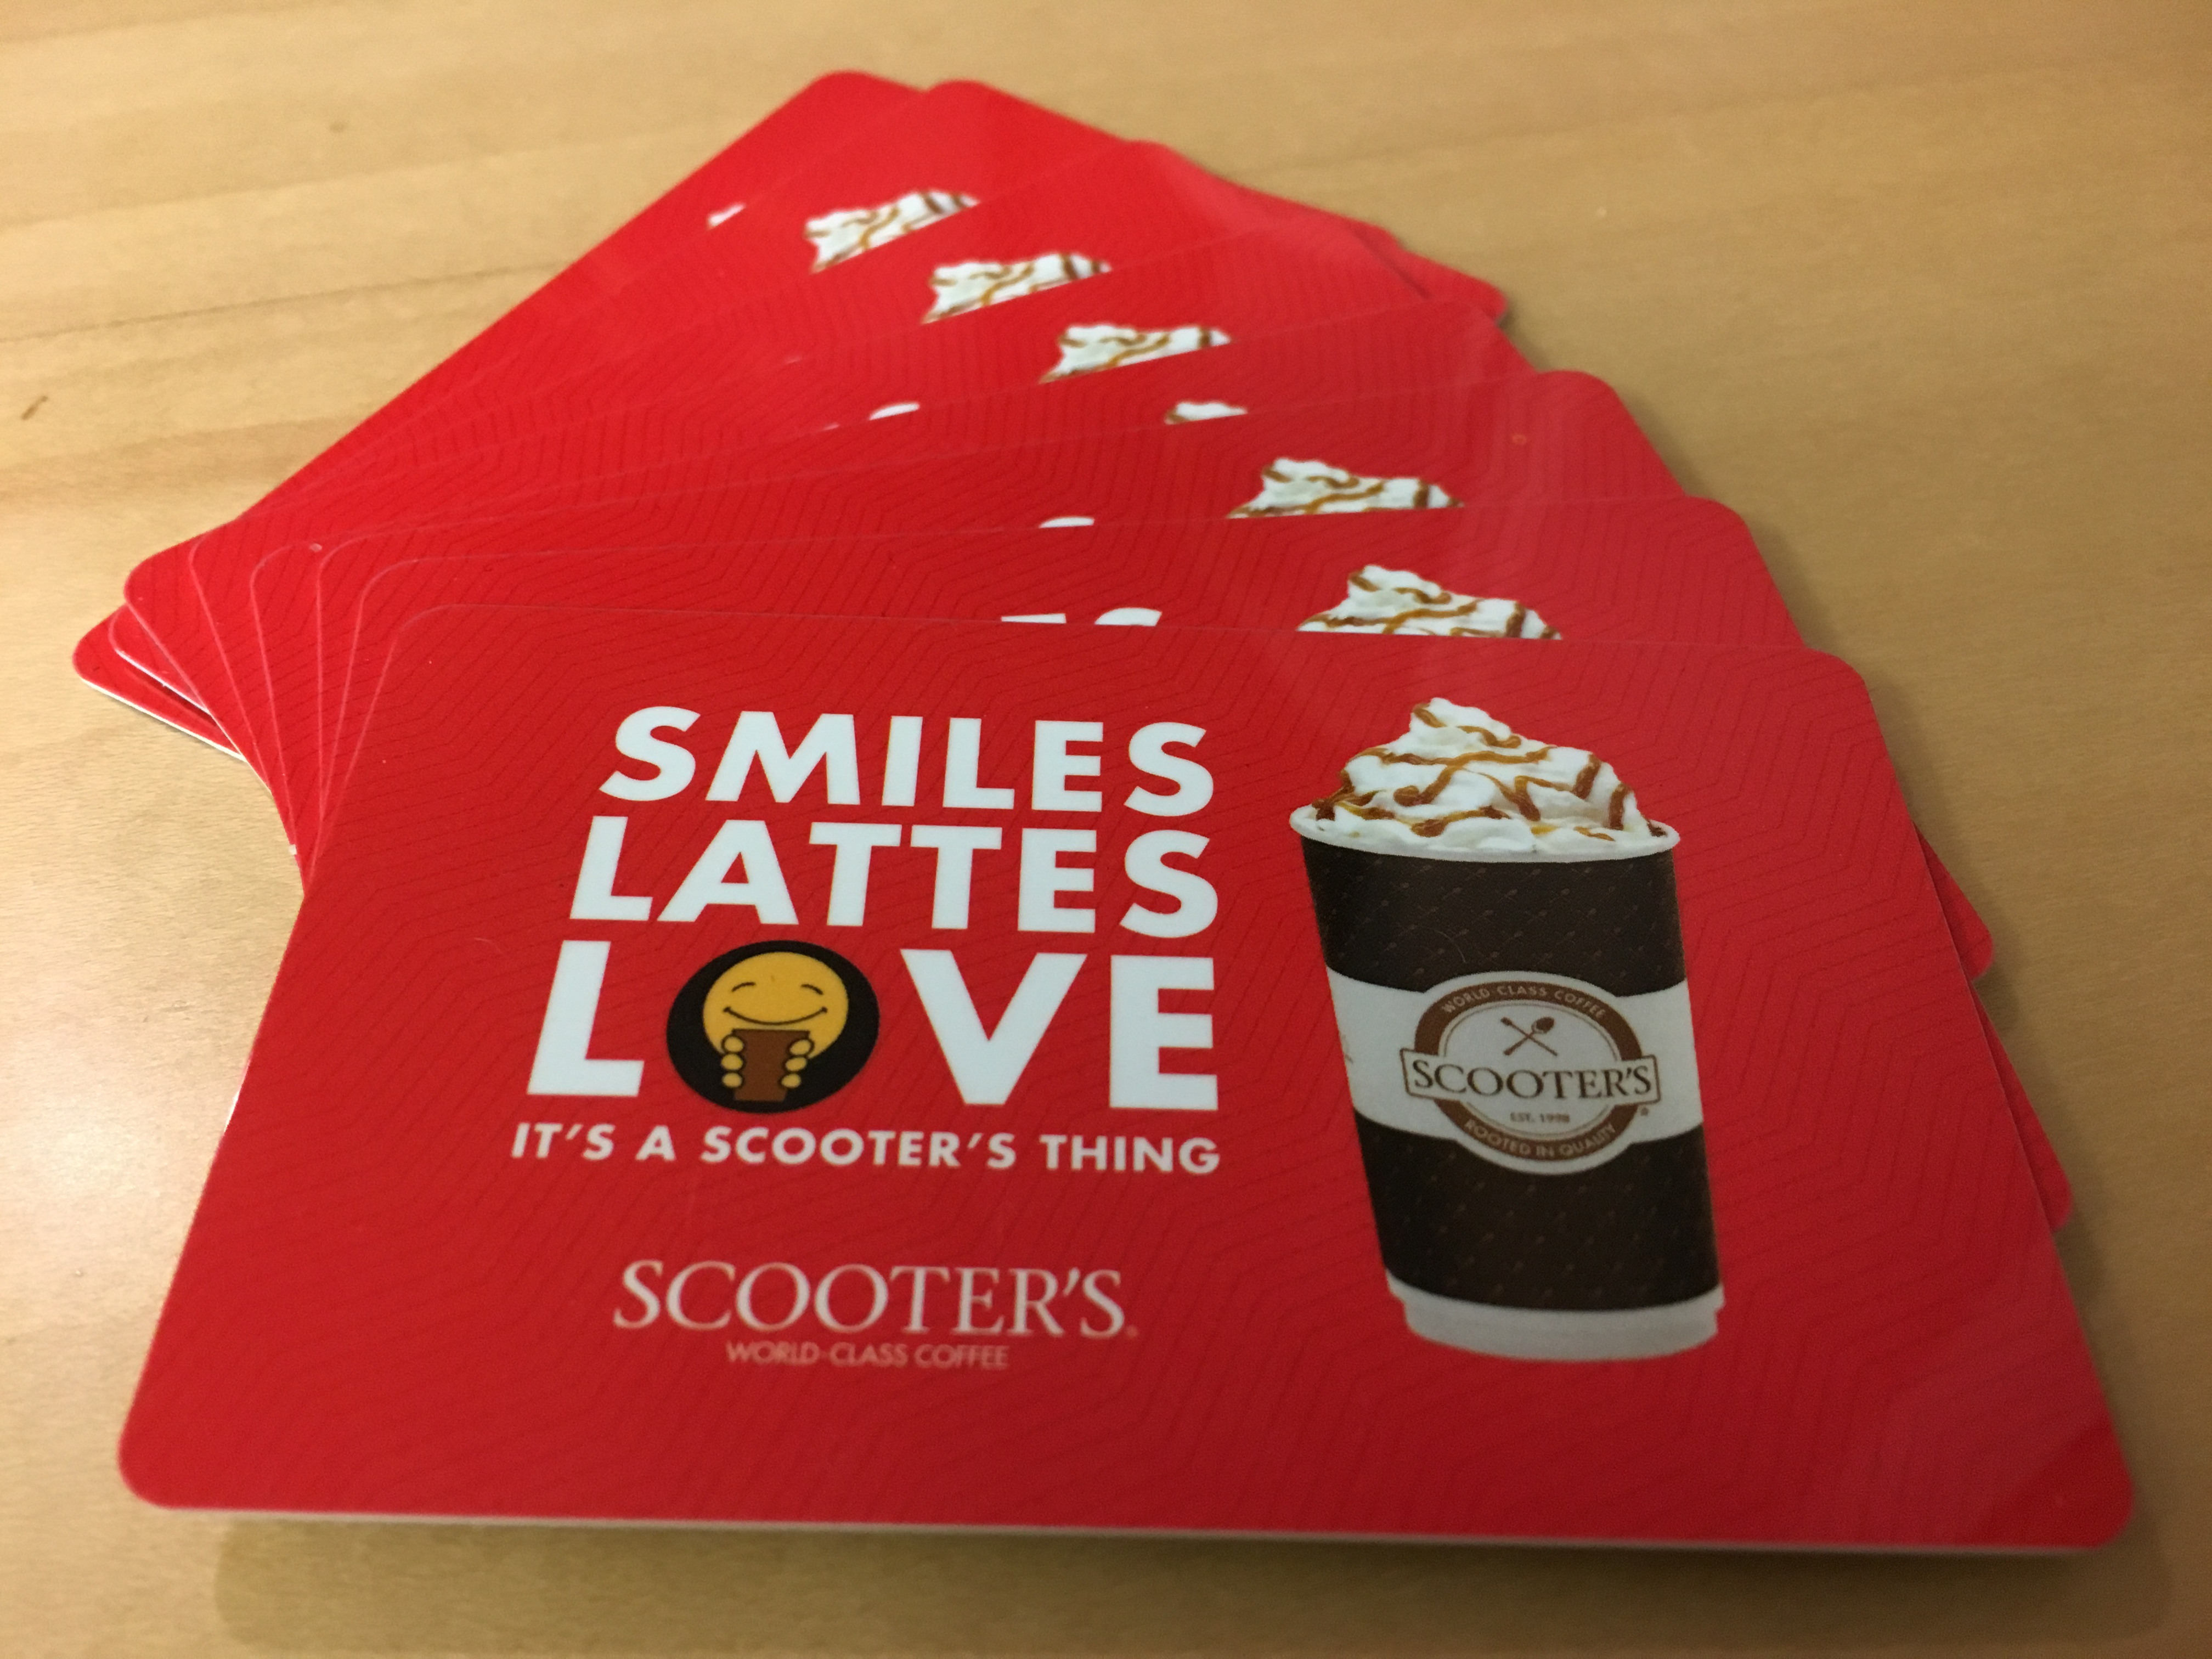 Get a $5 Scooter's gift card for referring a friend.